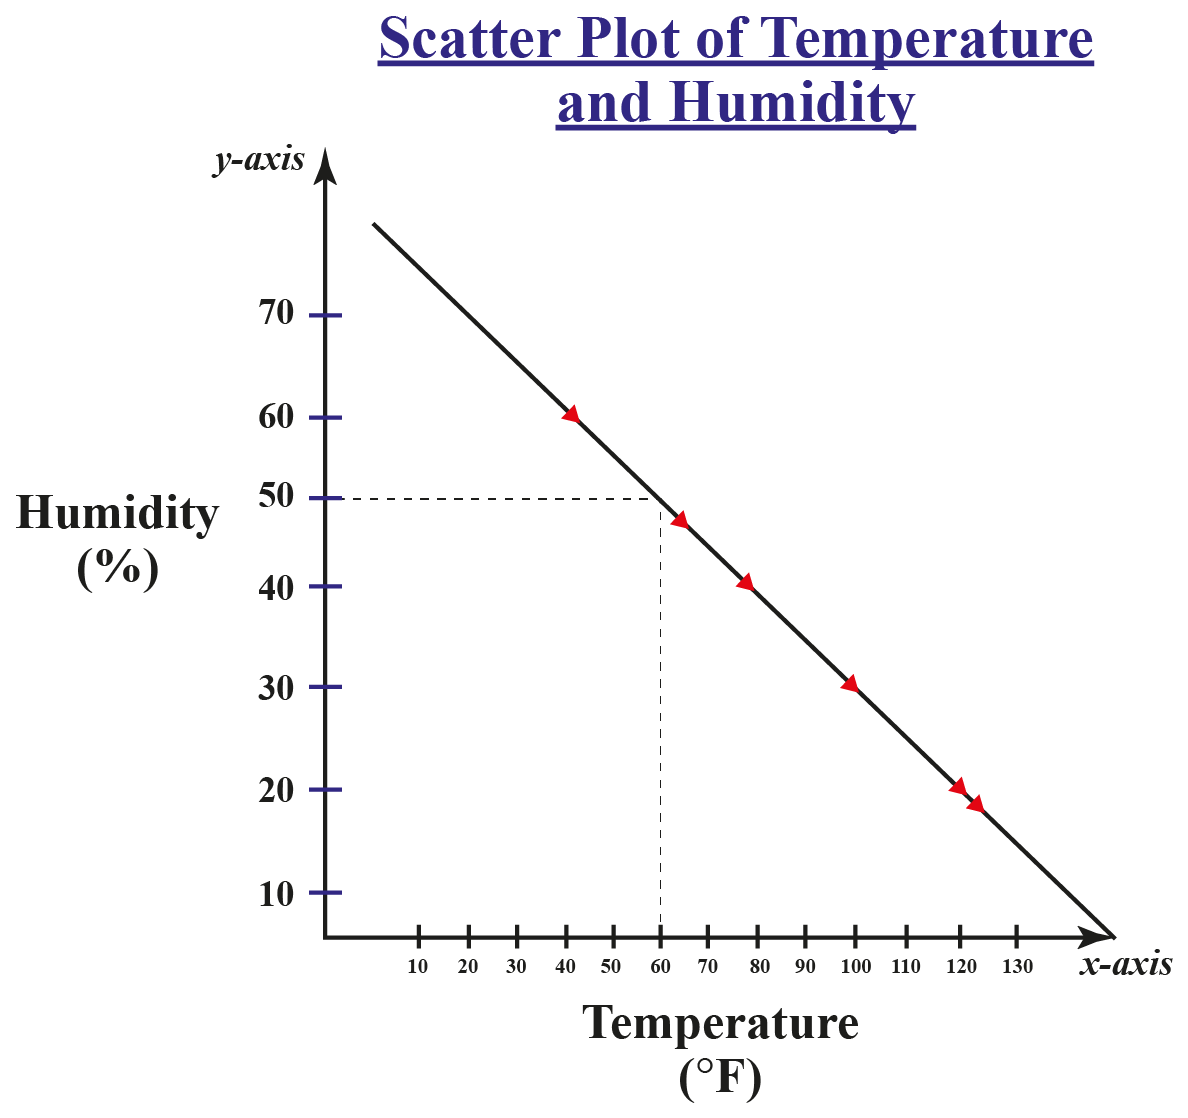 Scatter plot of temperature and humidity